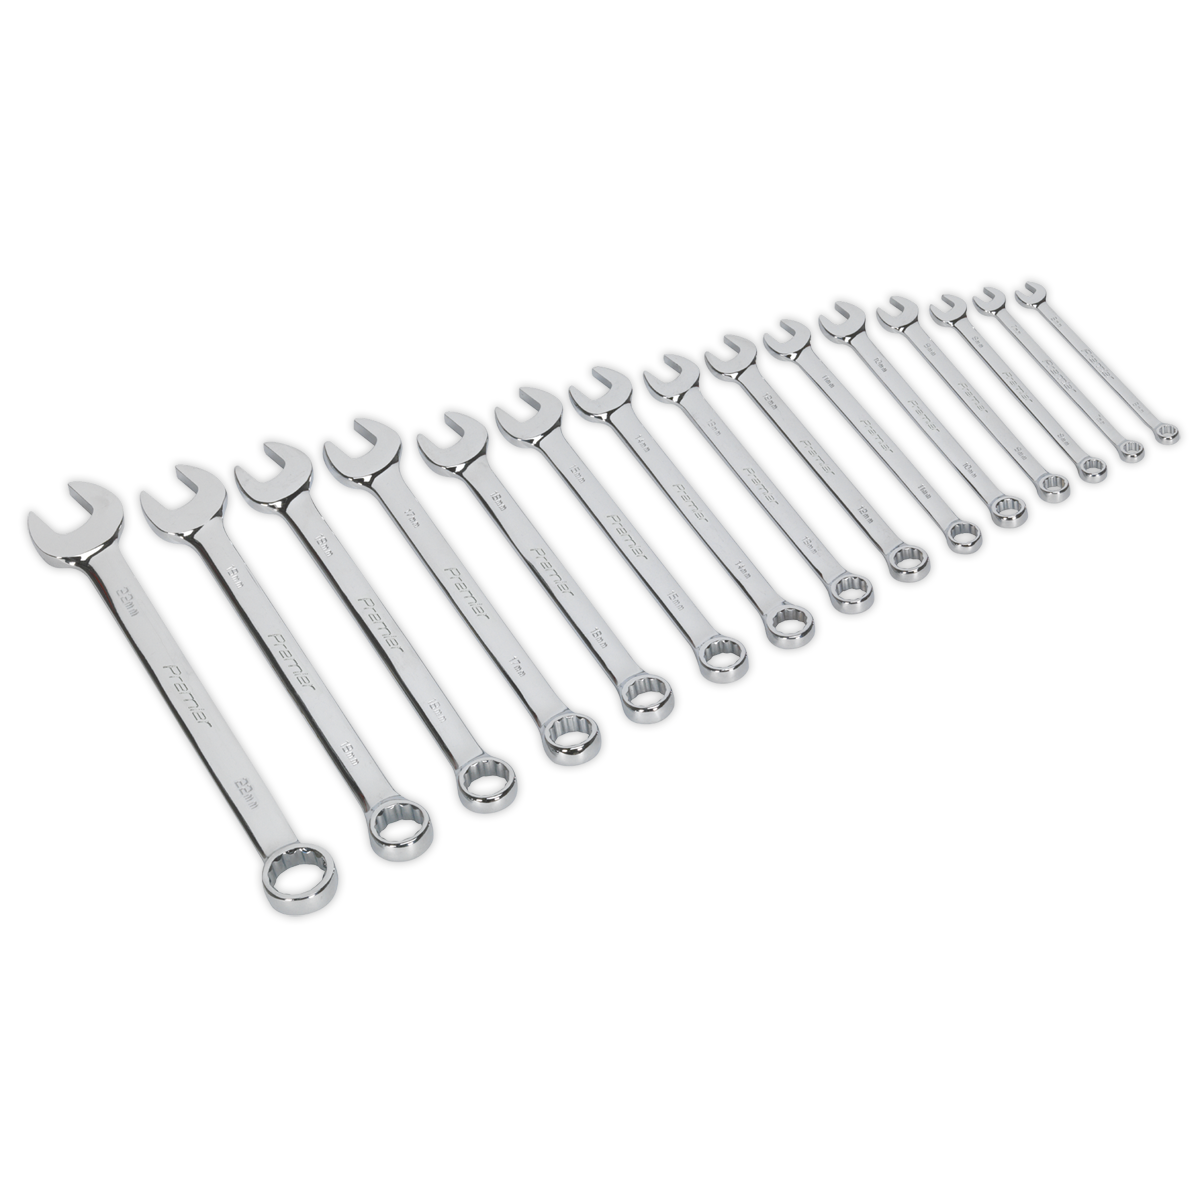 Combination Spanner Set 15pc Metric   SEALEY AK63015 by Sealey   New